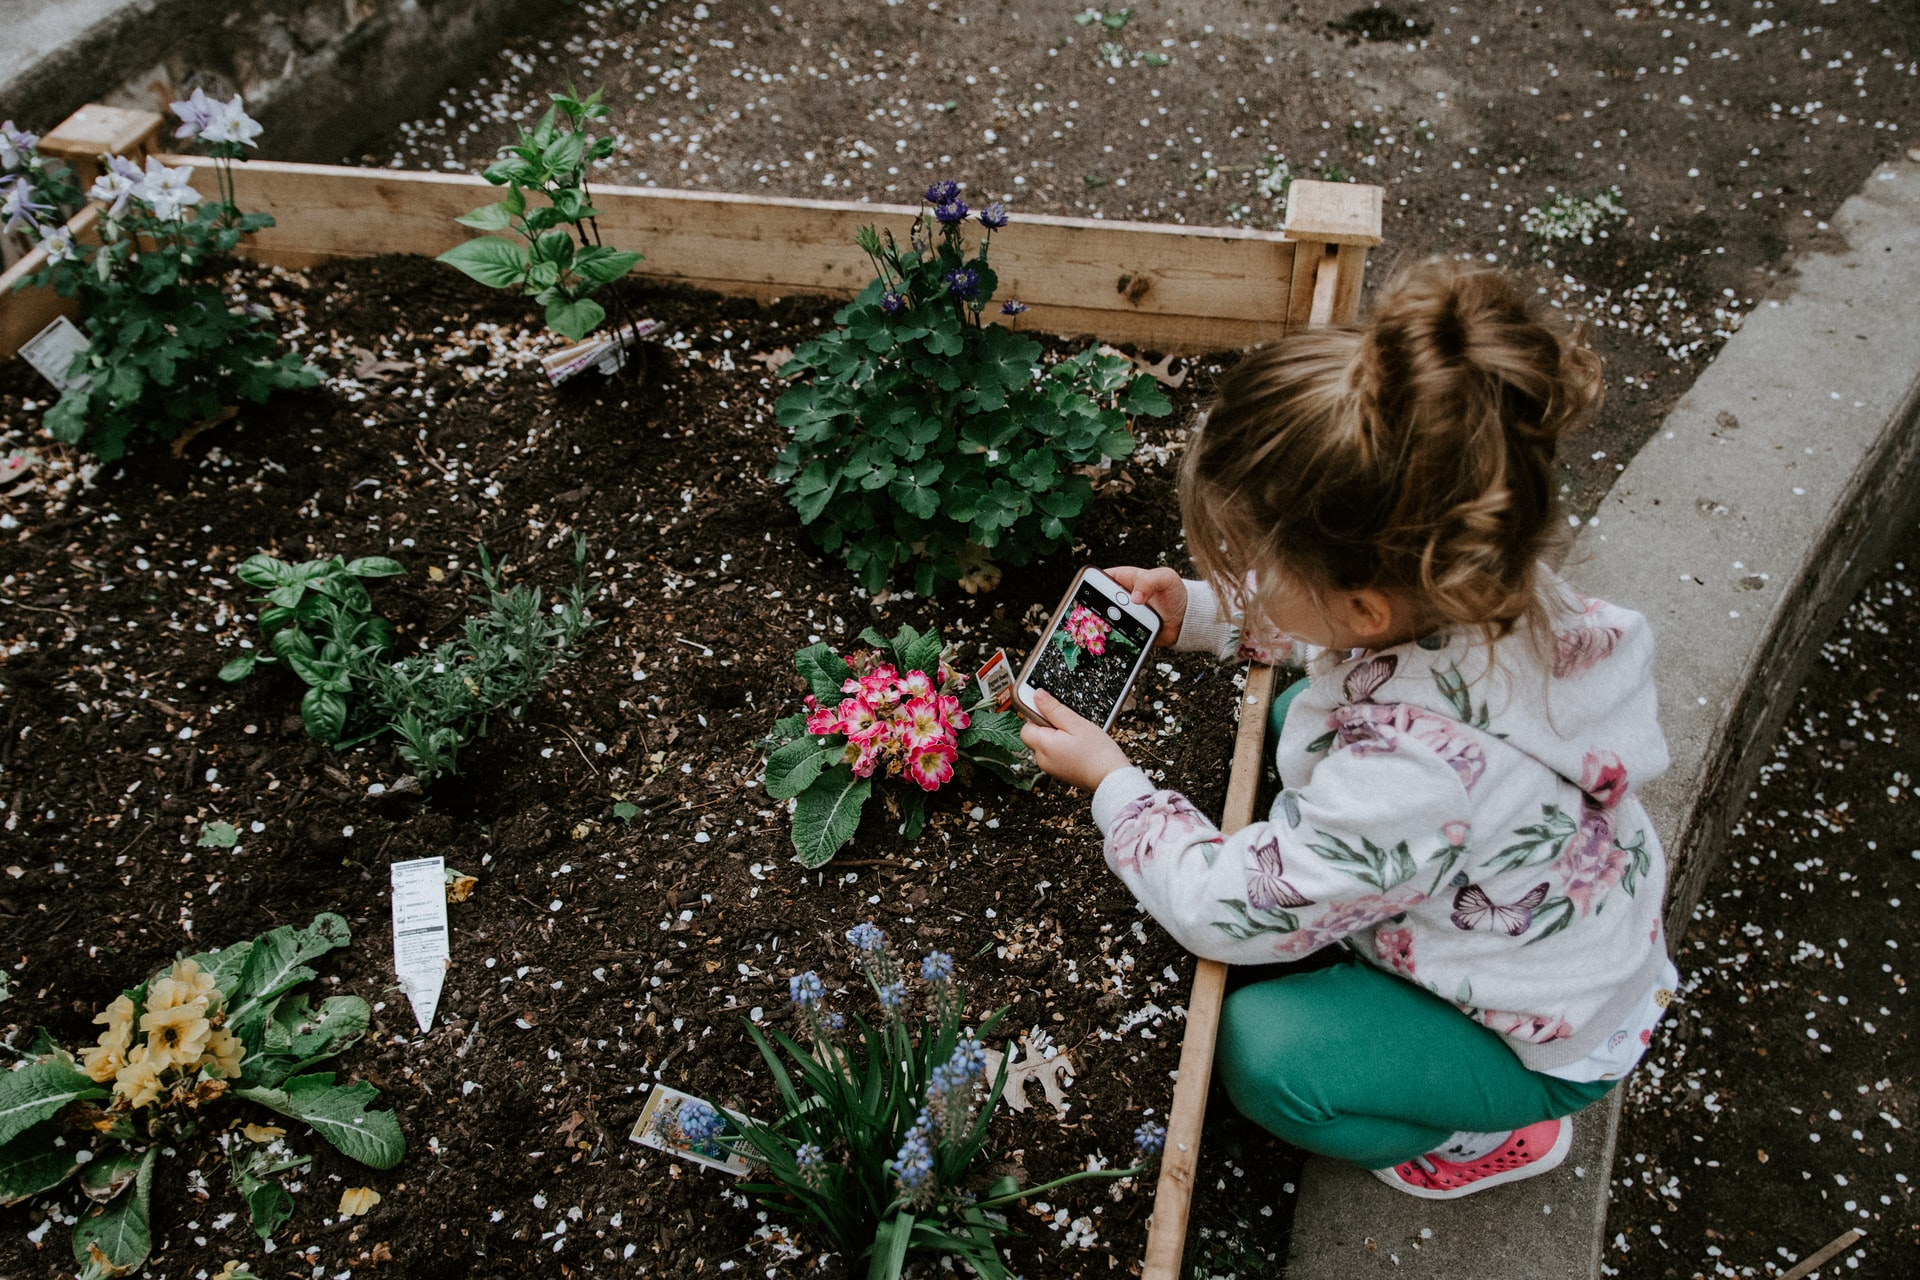 A young girl works in a garden filled with flowers.